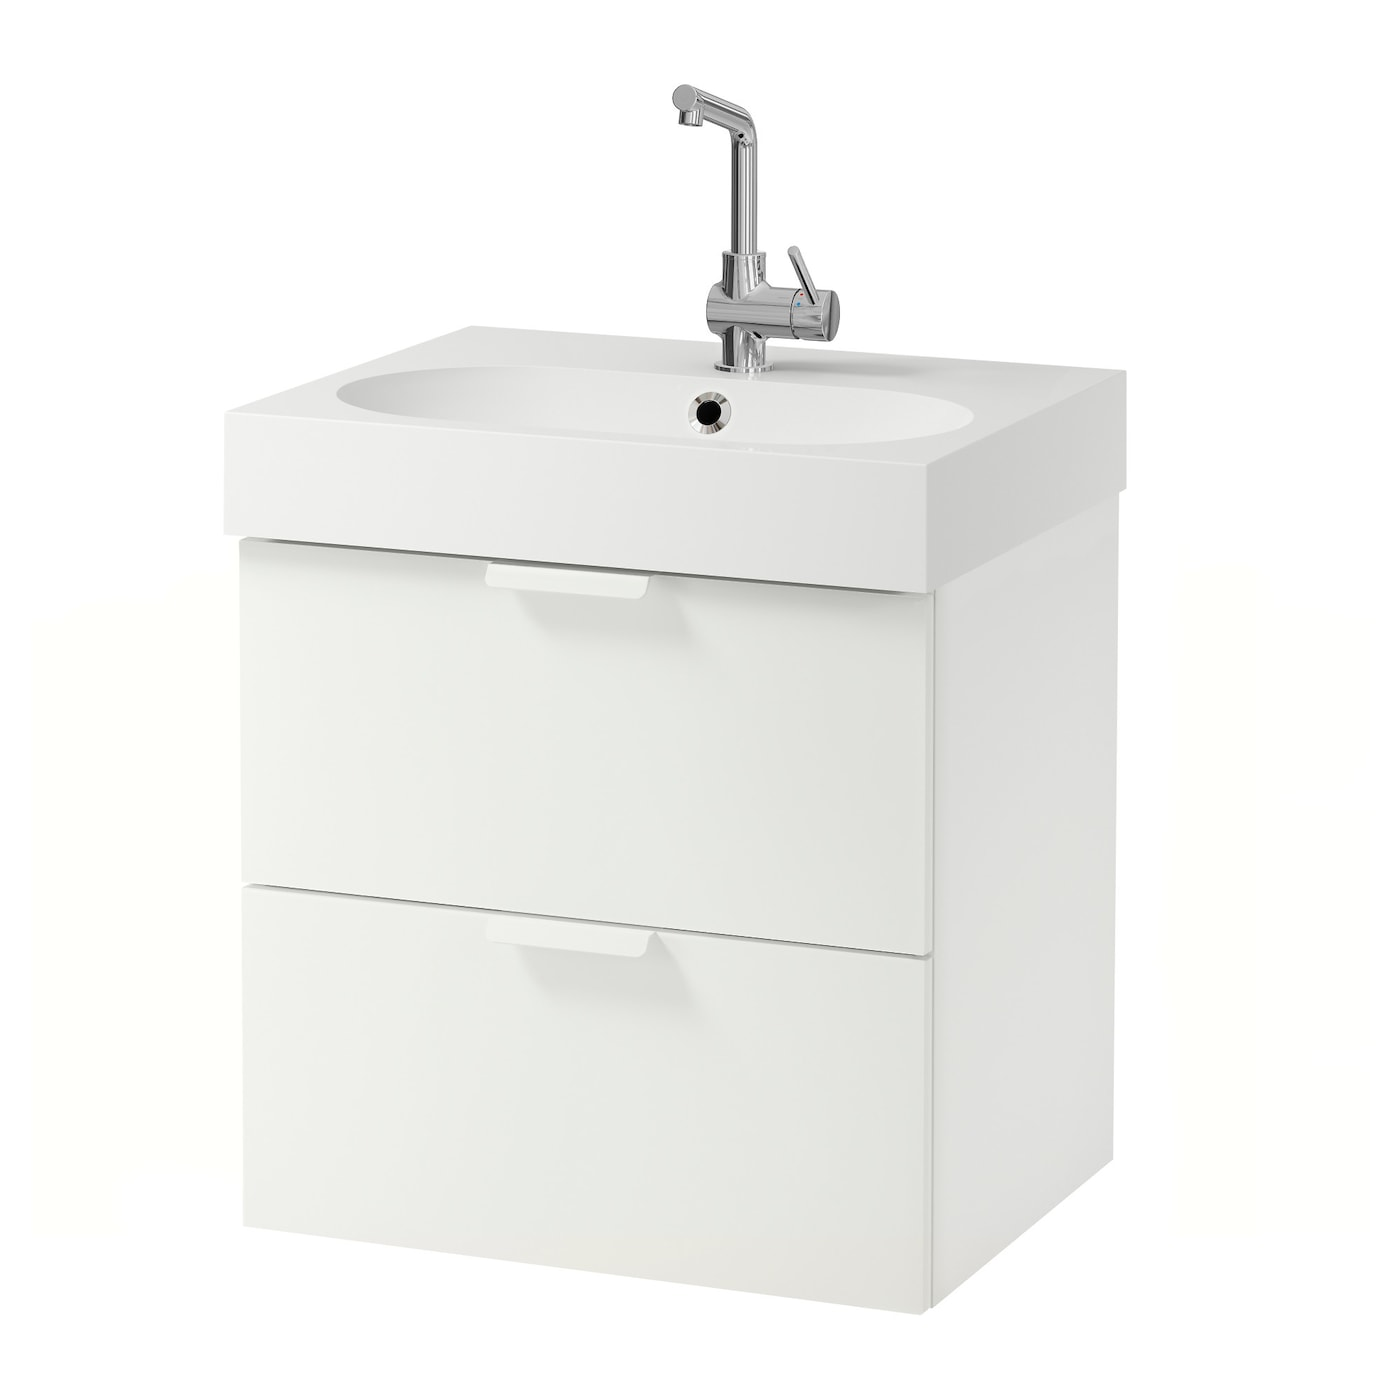 Bathroom sink cabinets ikea - Ikea Br Viken Godmorgon Wash Stand With 2 Drawers